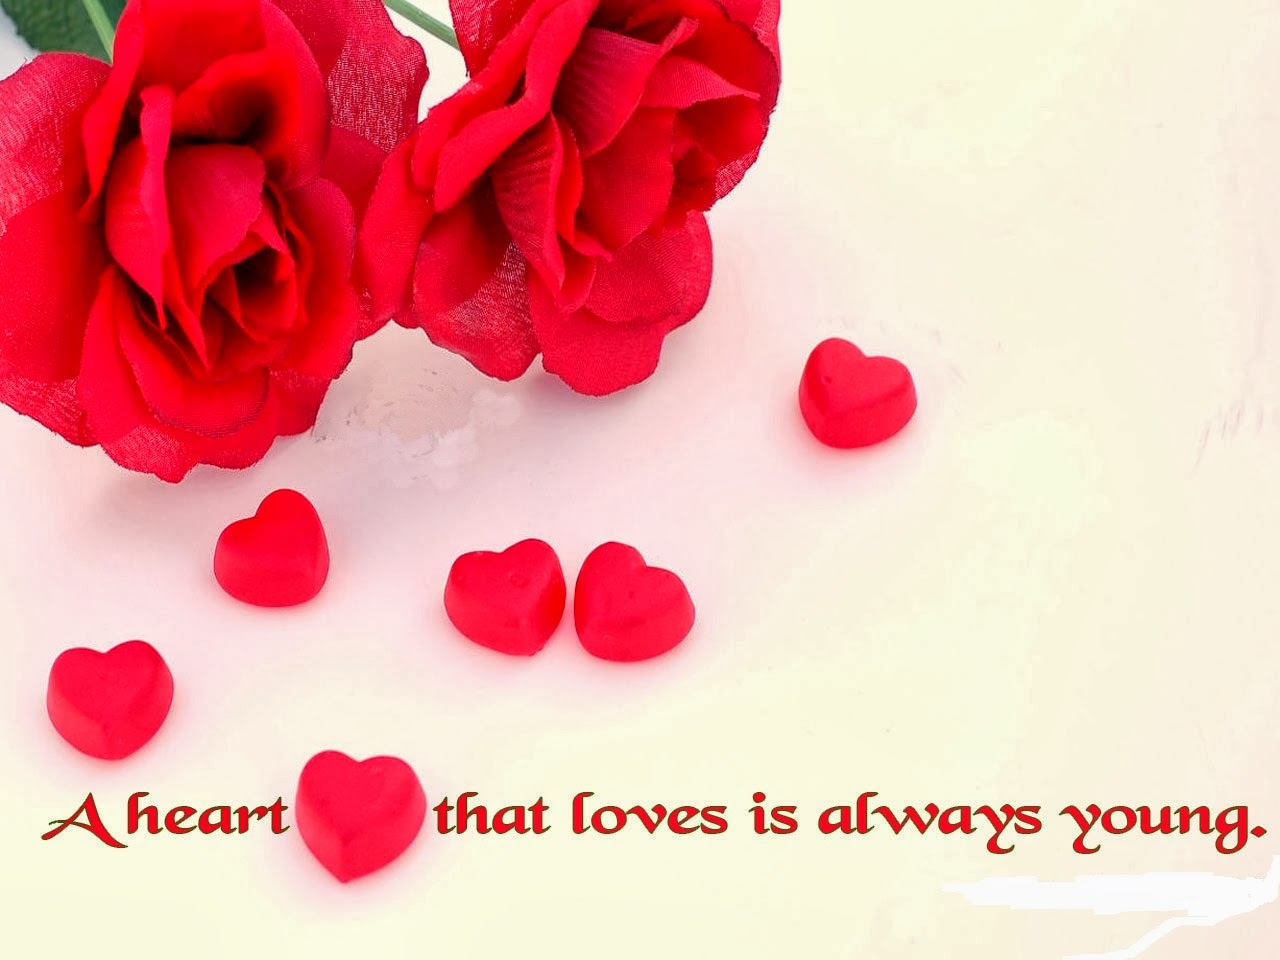 Quotes about love in images